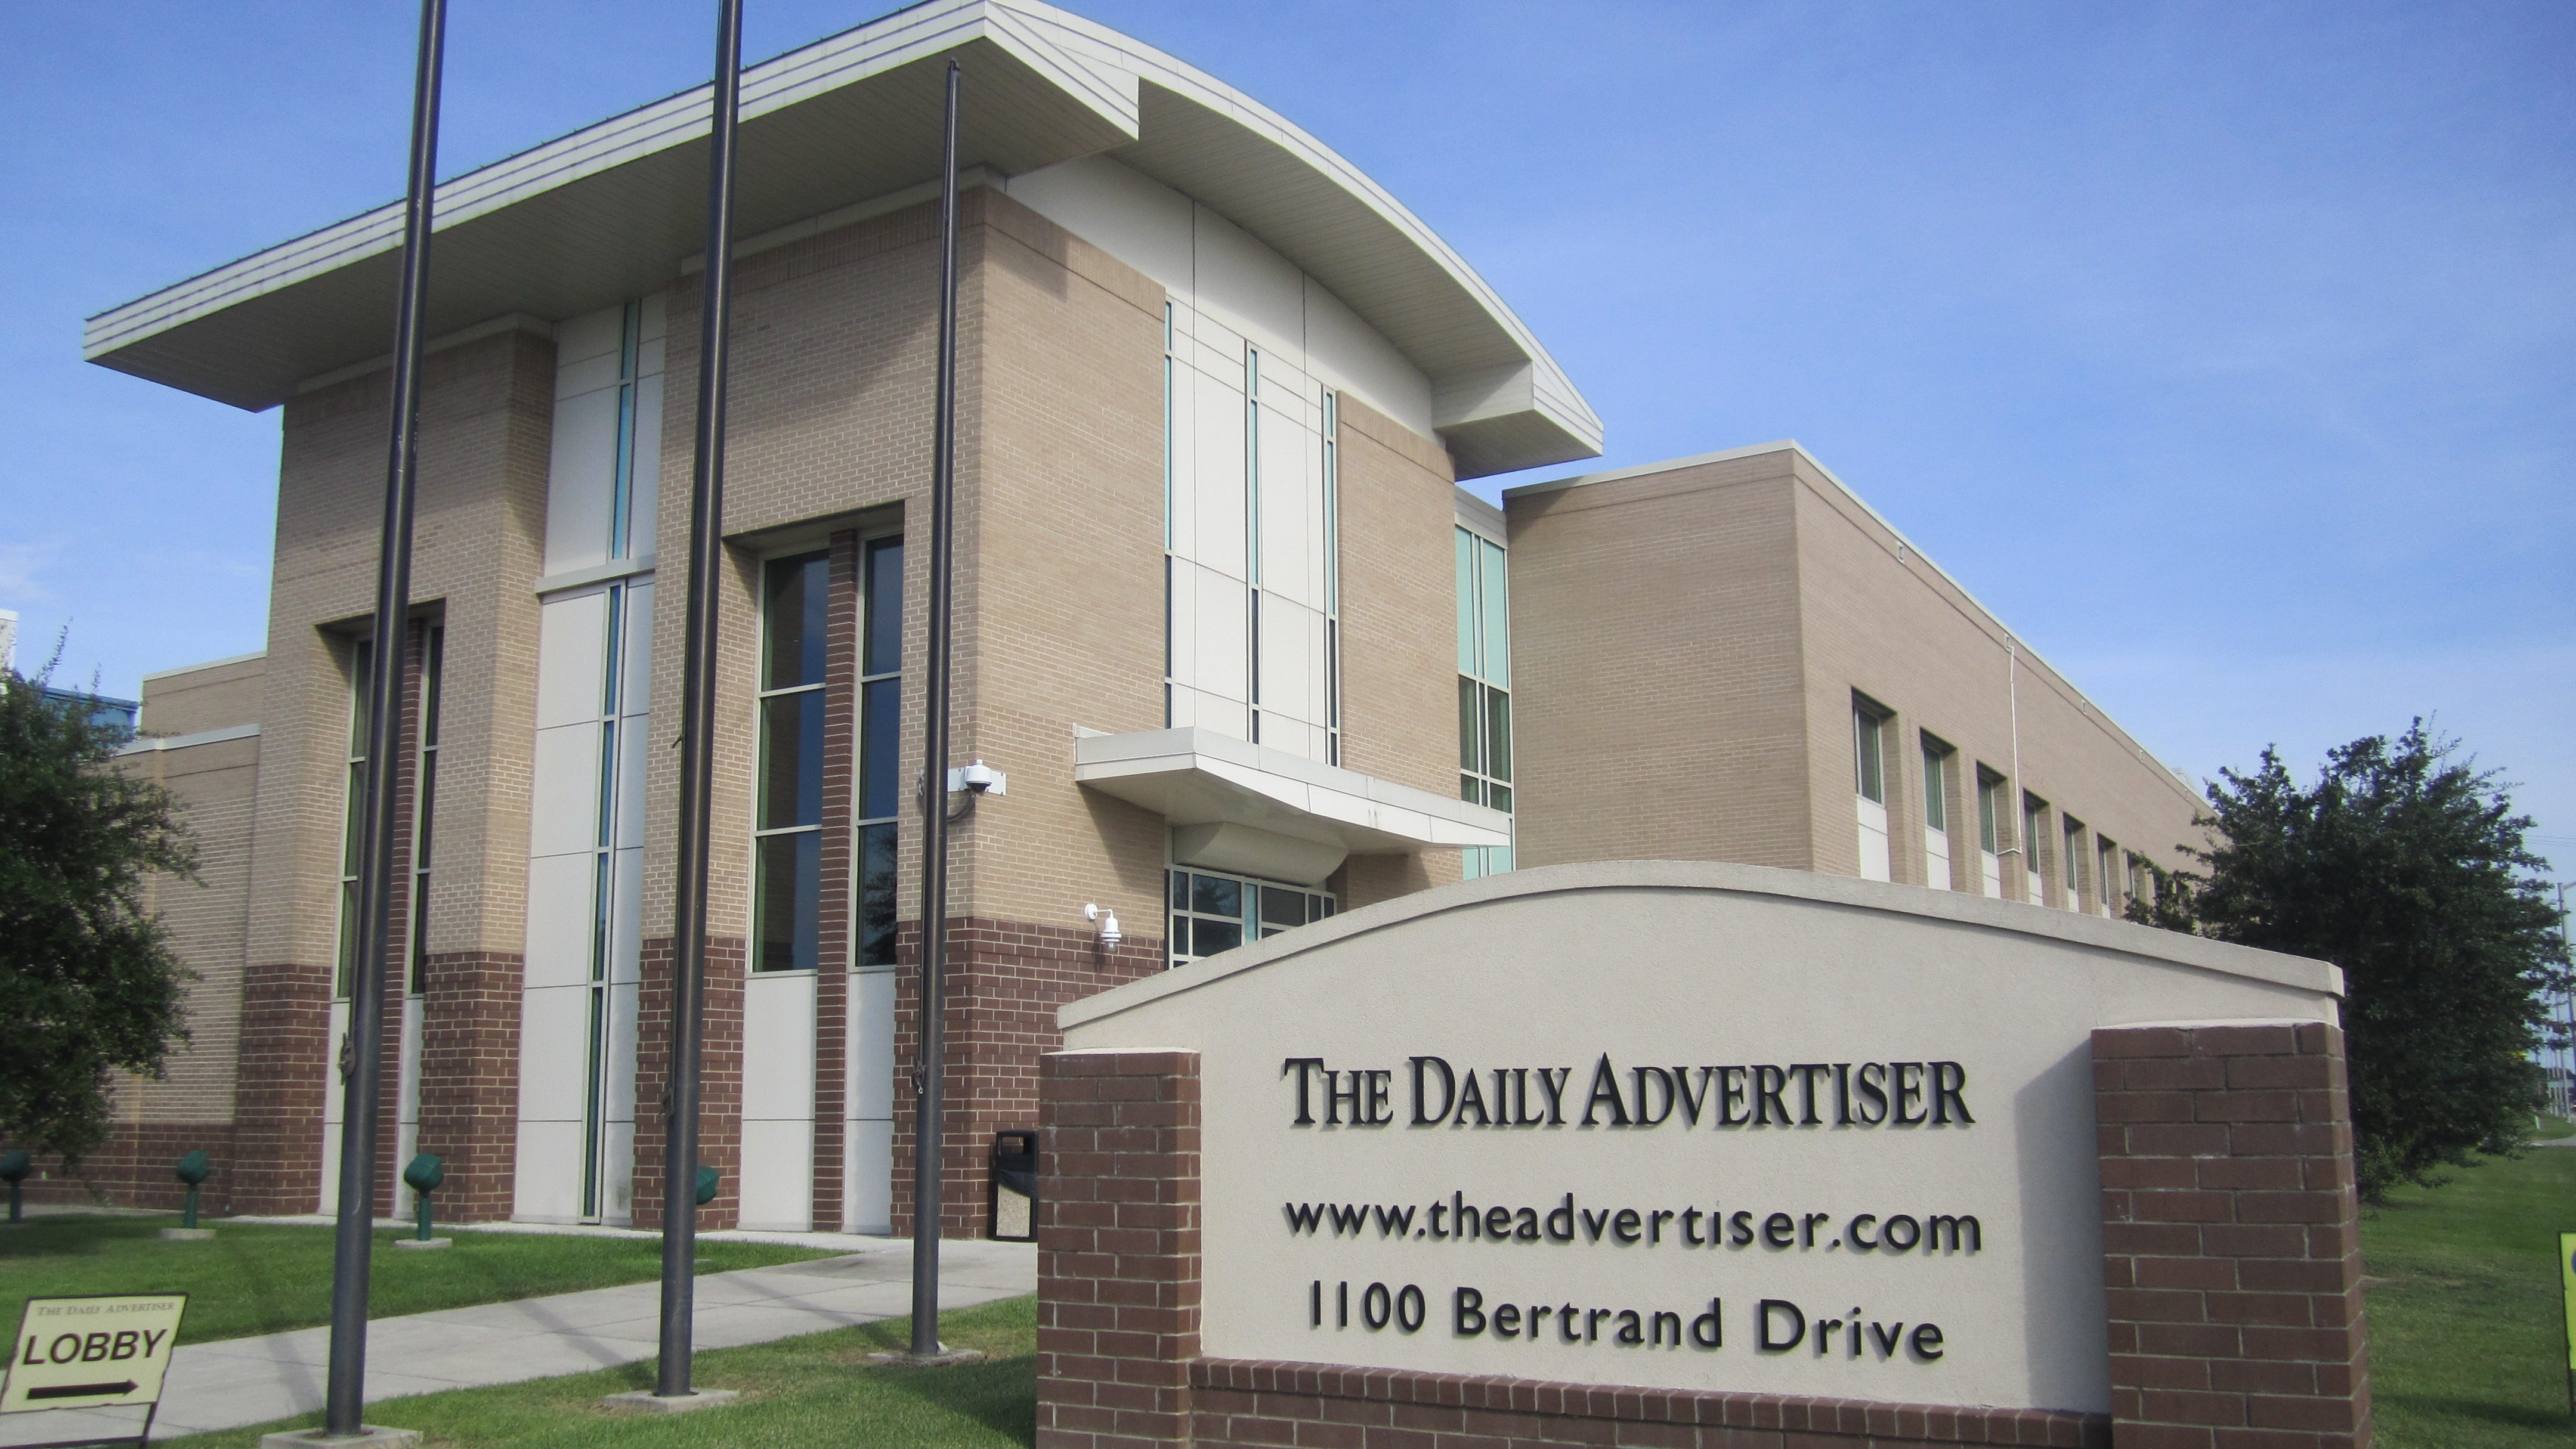 12 reasons to subscribe to The Daily Advertiser this holiday season